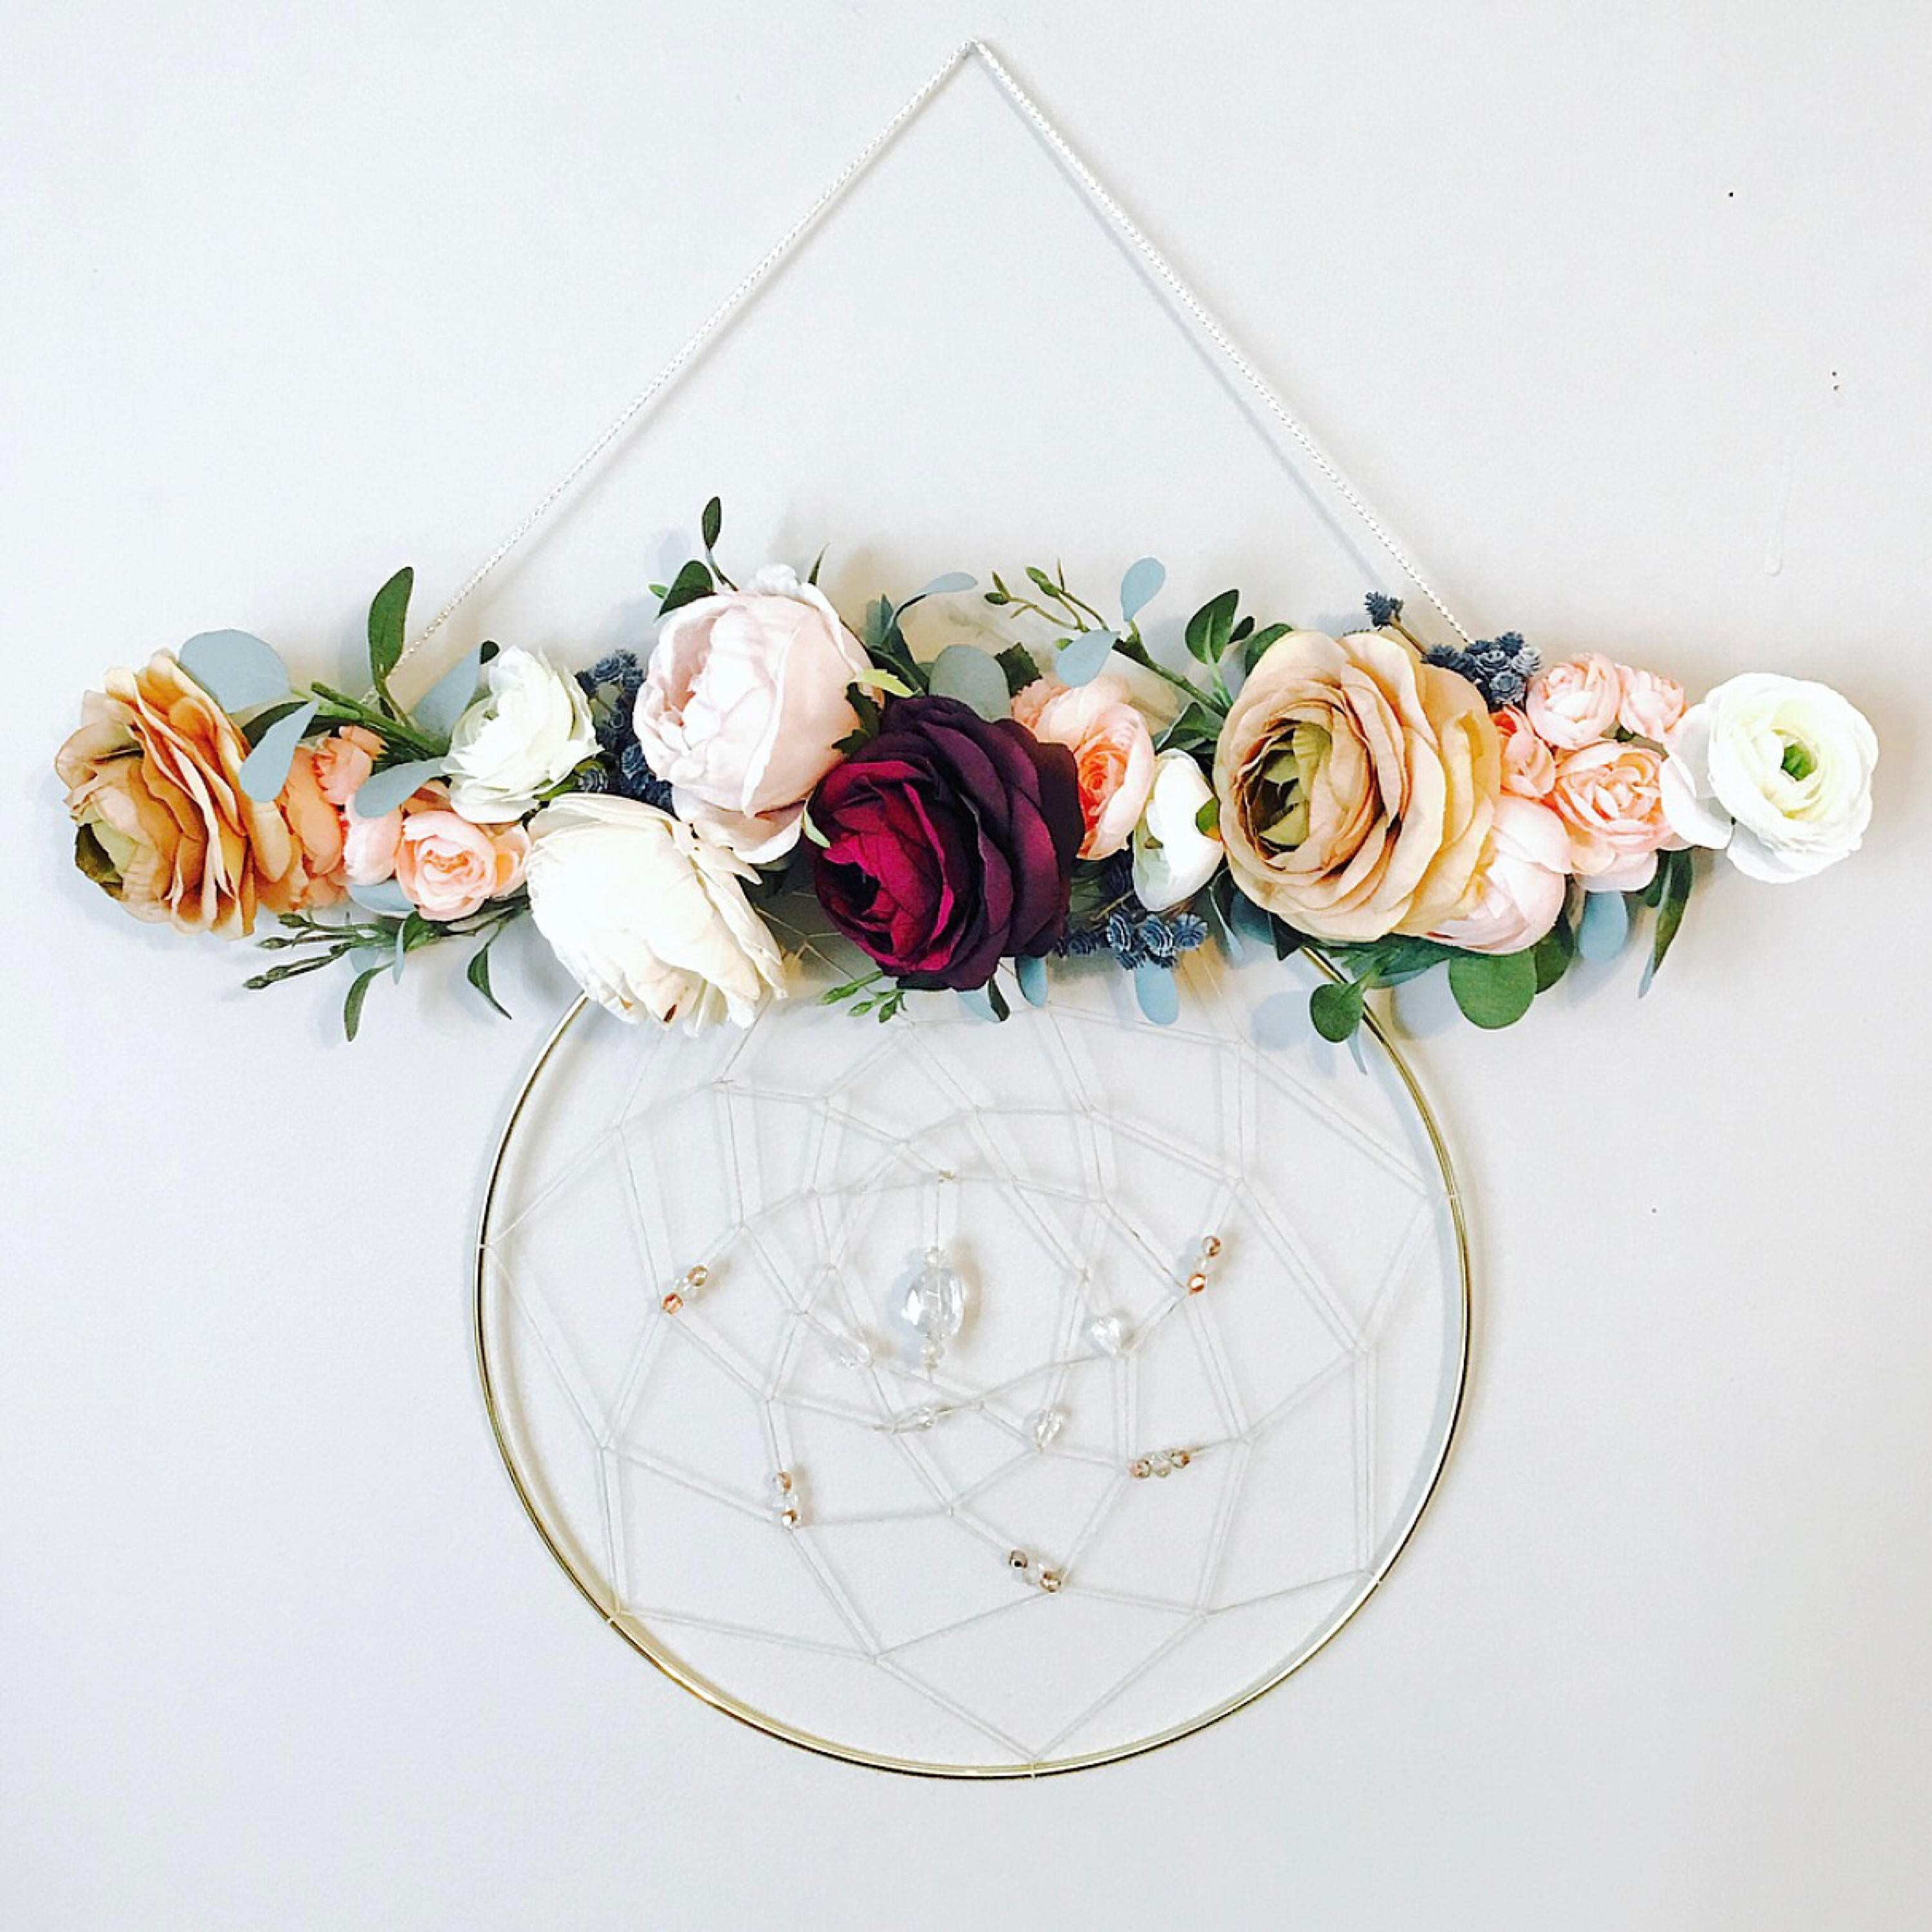 Wall Hanging Dream catcher Wall Hanging Floral Wall Hanging